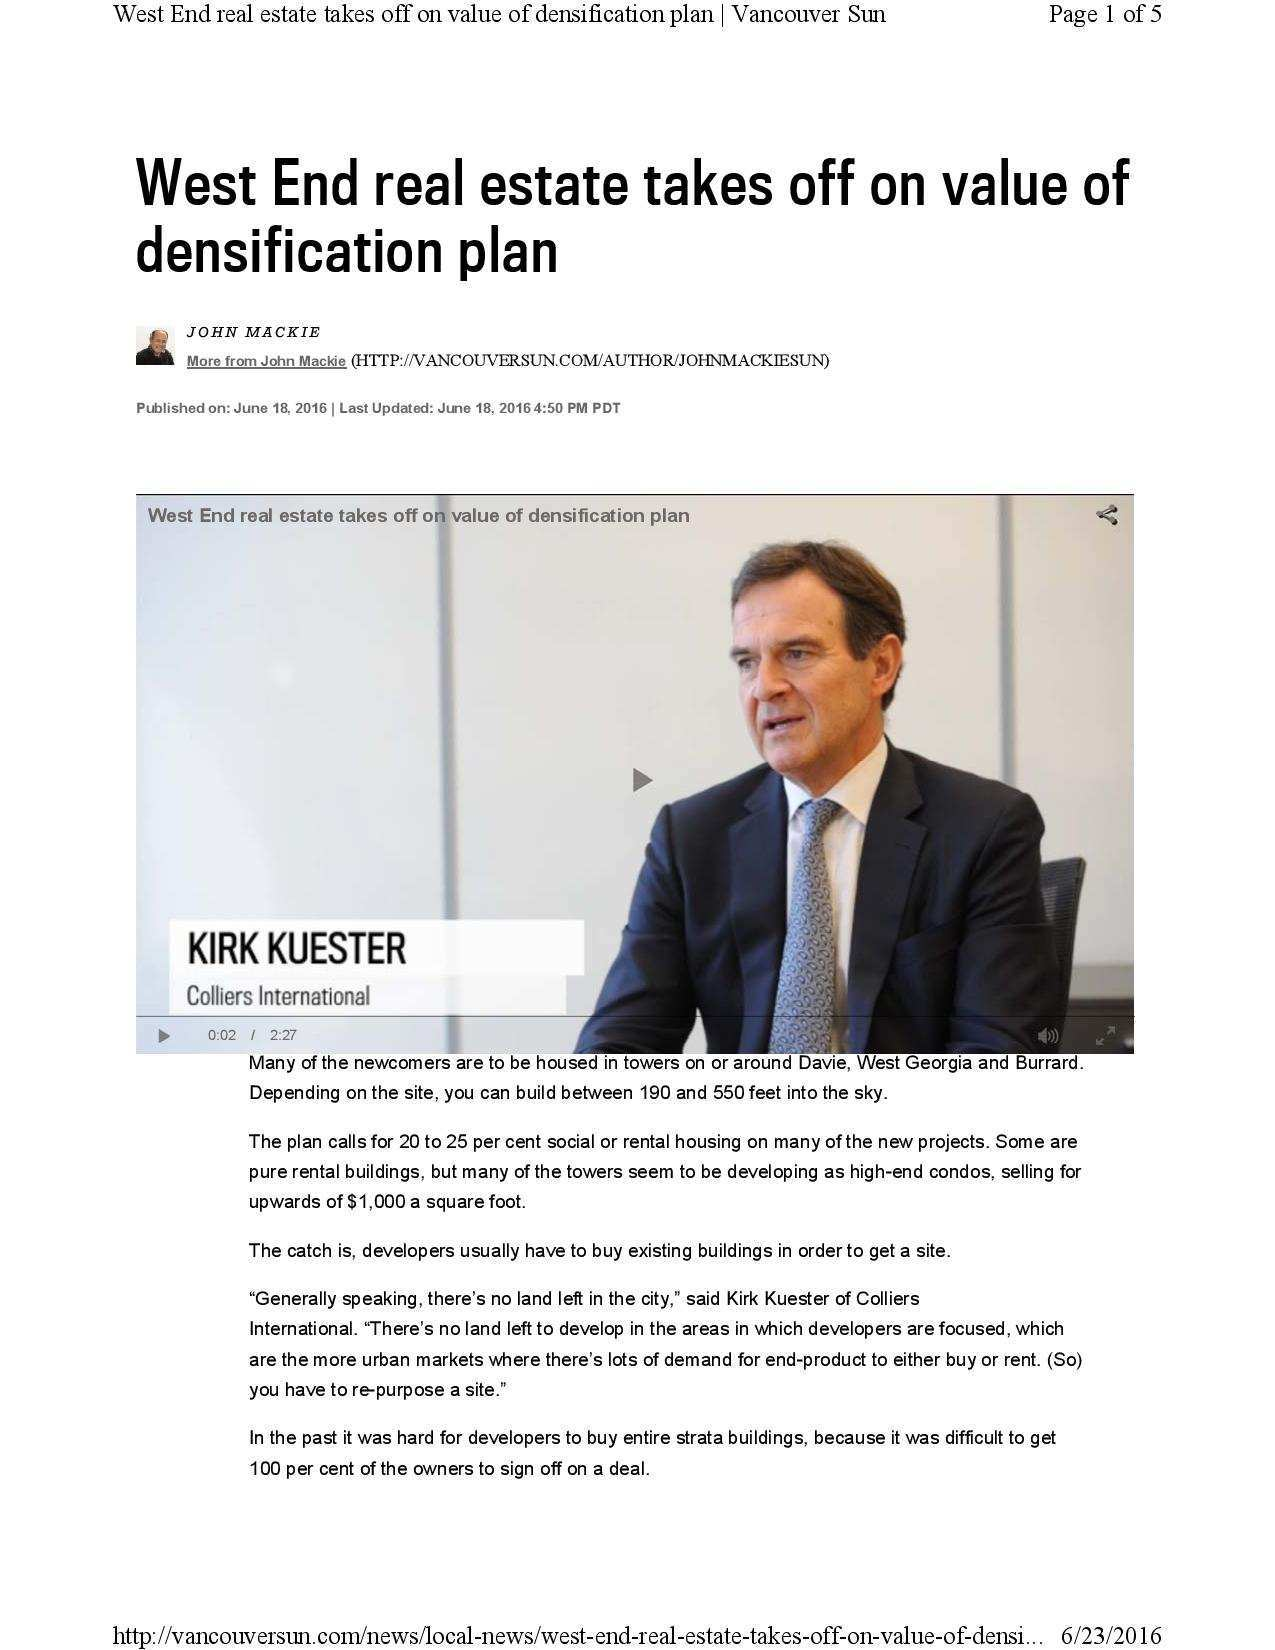 Feature Article: West End Real Estate Takes Off on Value of Densification Plan